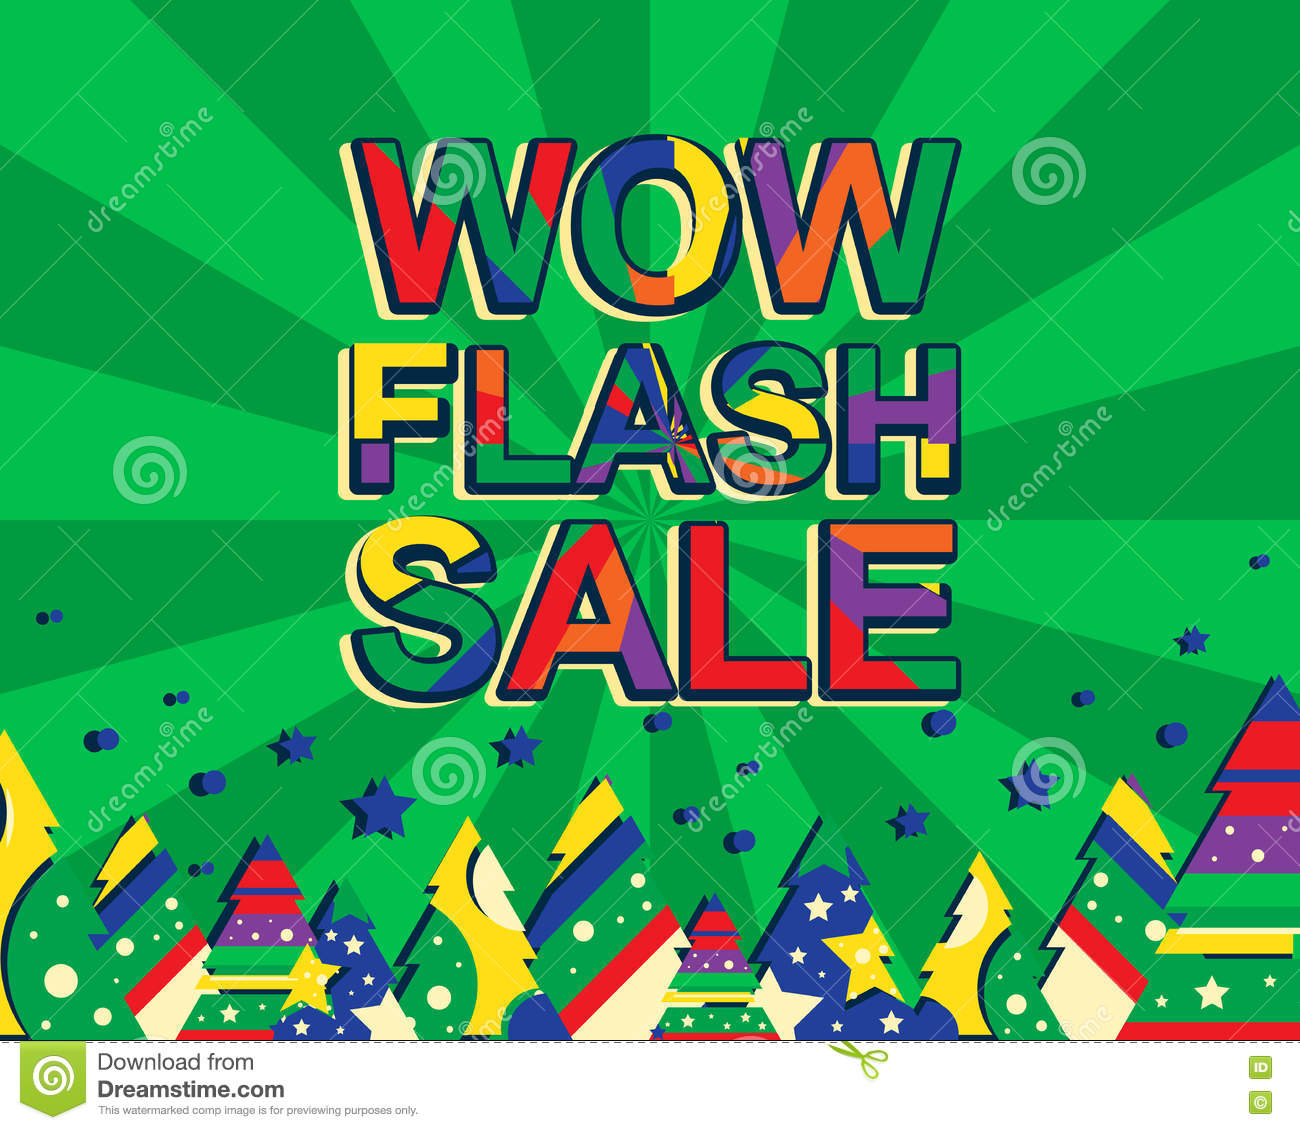 Big winter sale poster with wow flash sale text. Advertising.